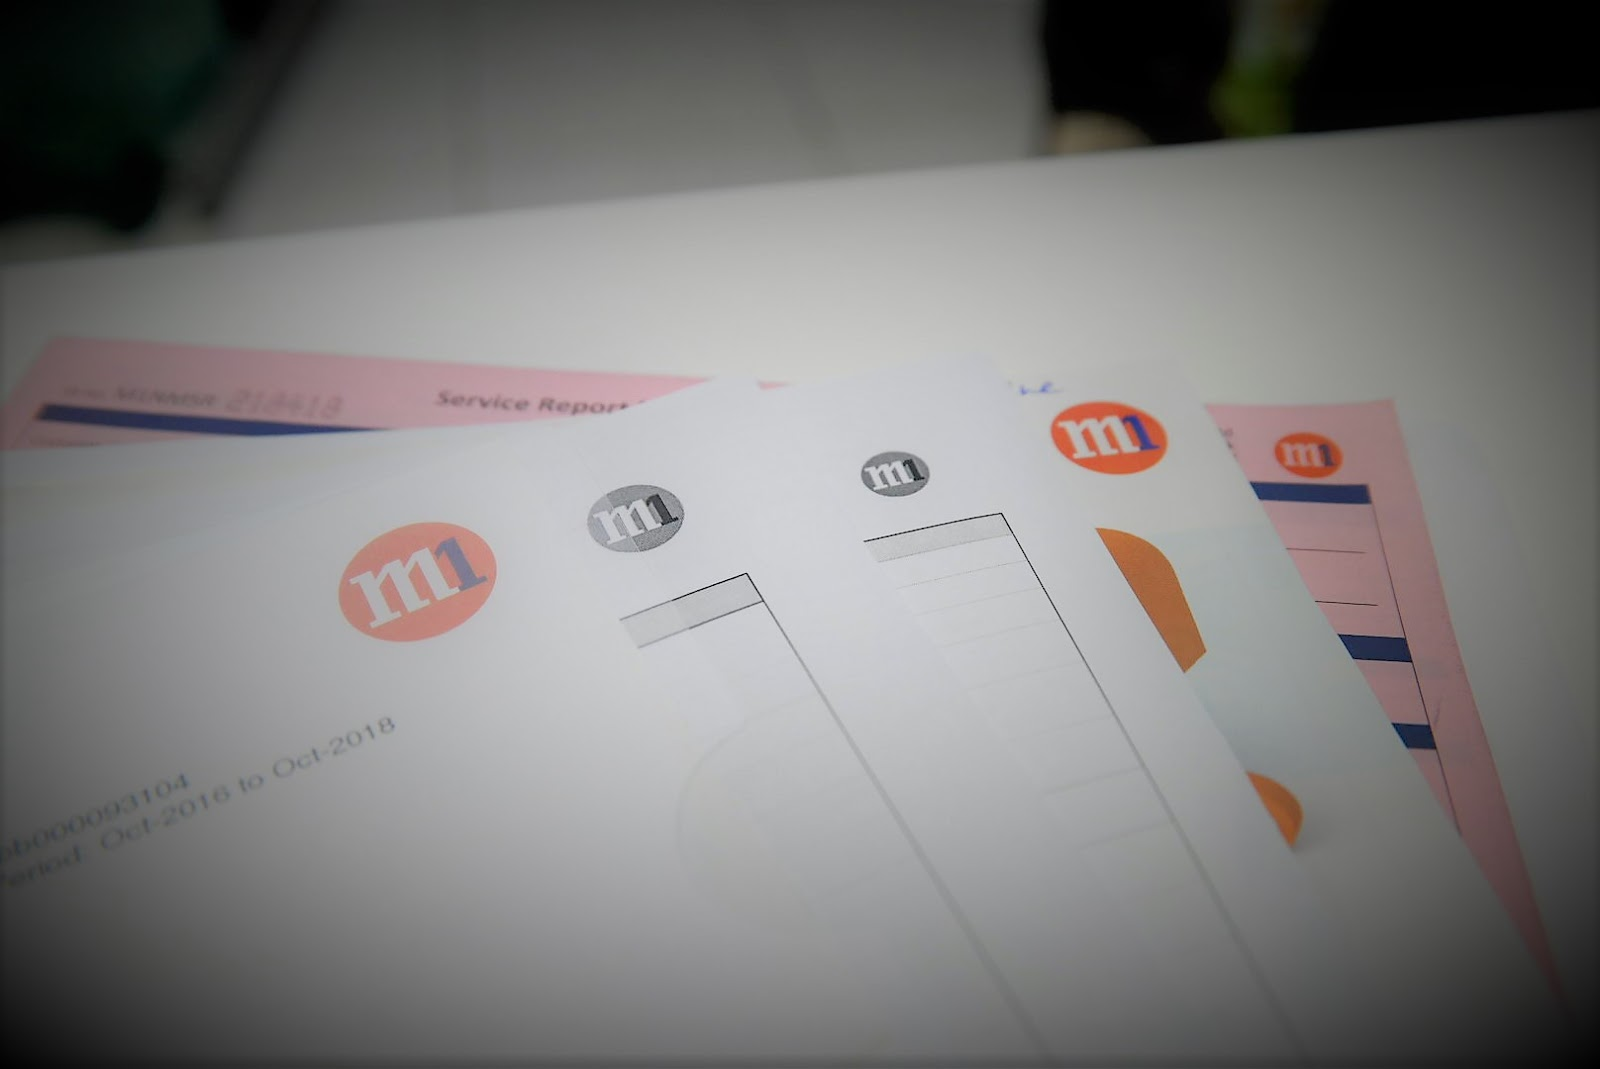 Switching ISP from SingTel to M1 | The Singapore Gadget Talk